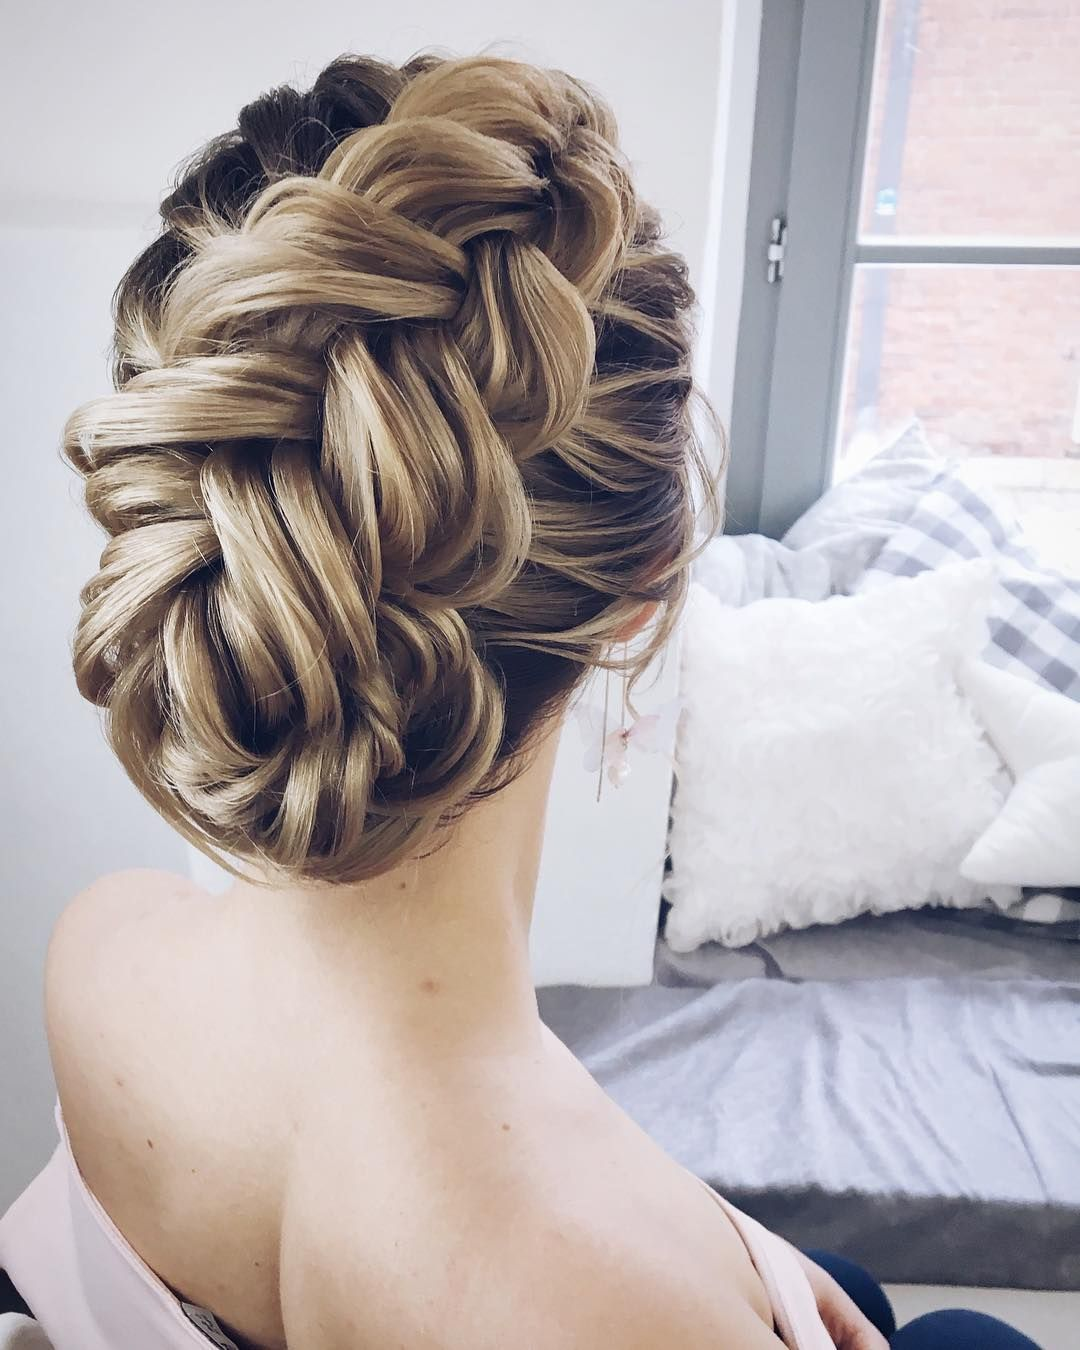 92 drop-dead gorgeous wedding hairstyles for every bride to